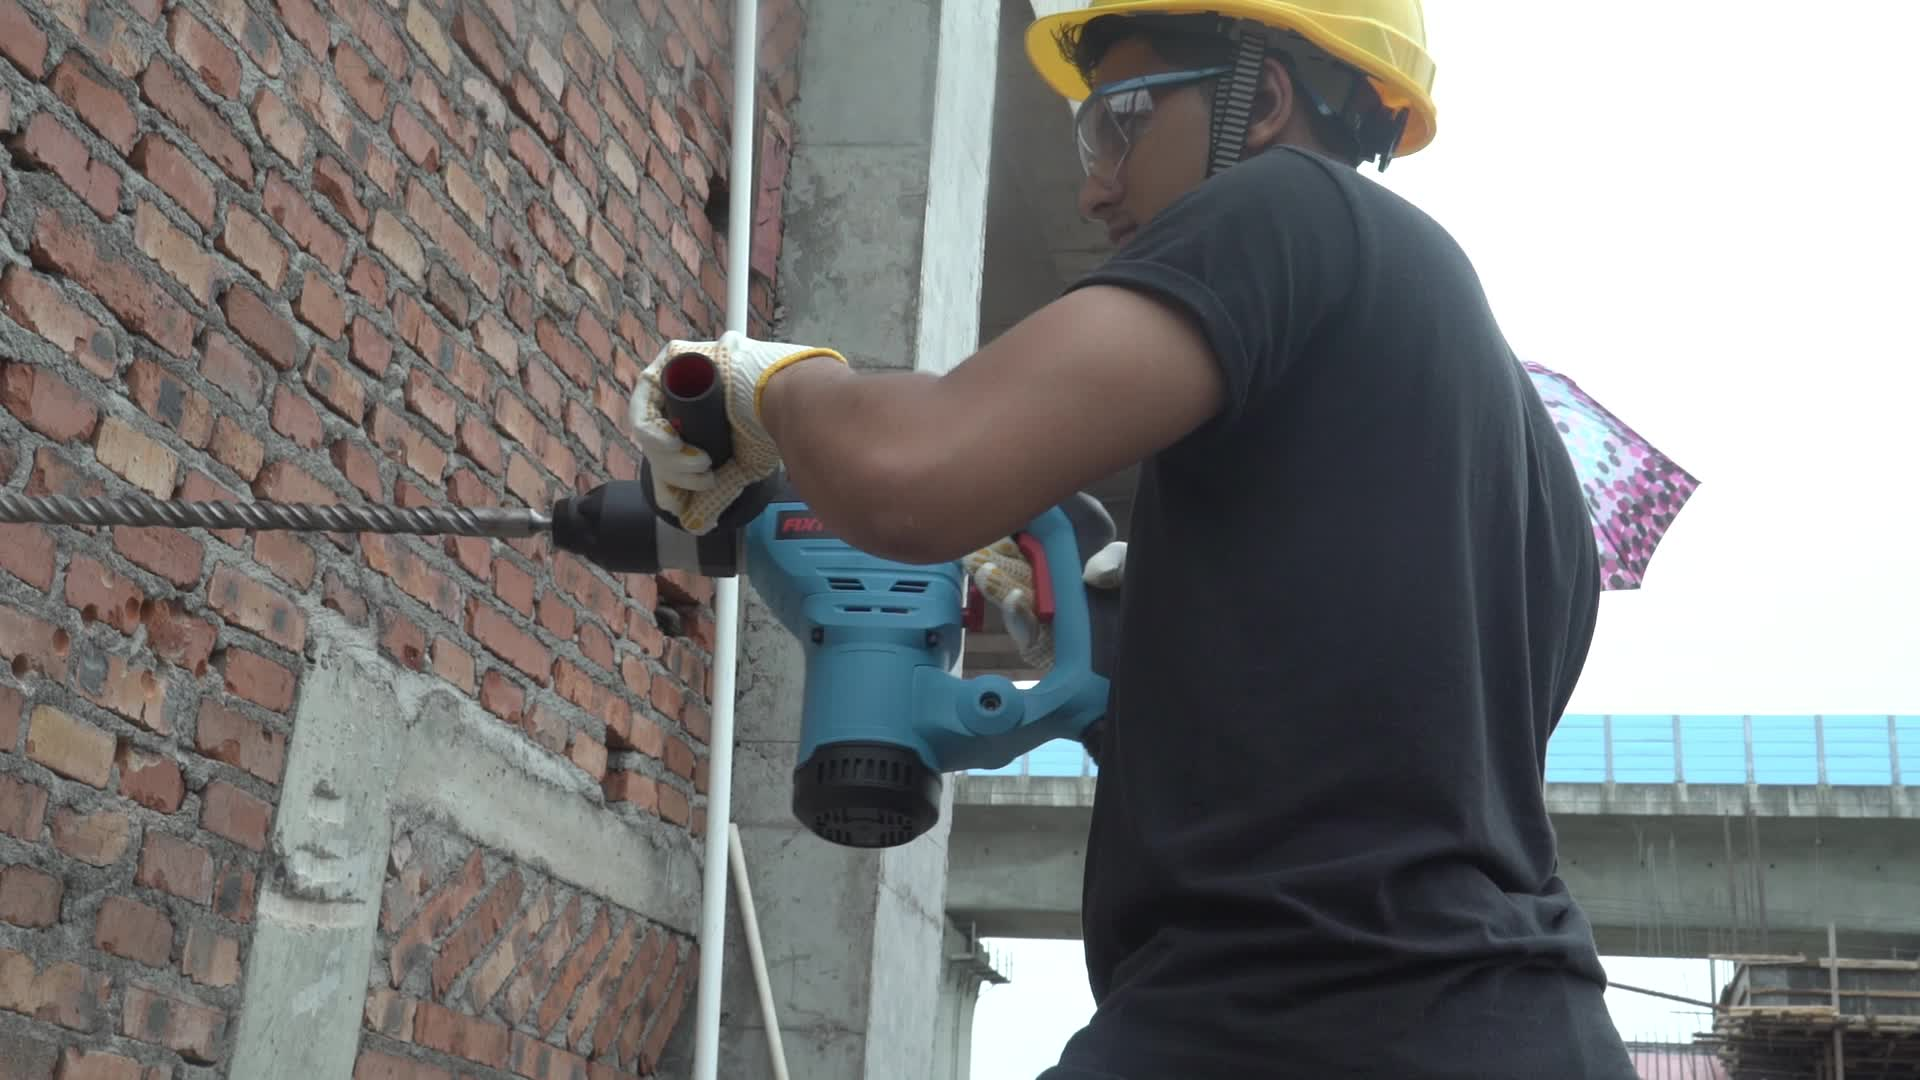 EBIC Rotary Hammer in Good Quality